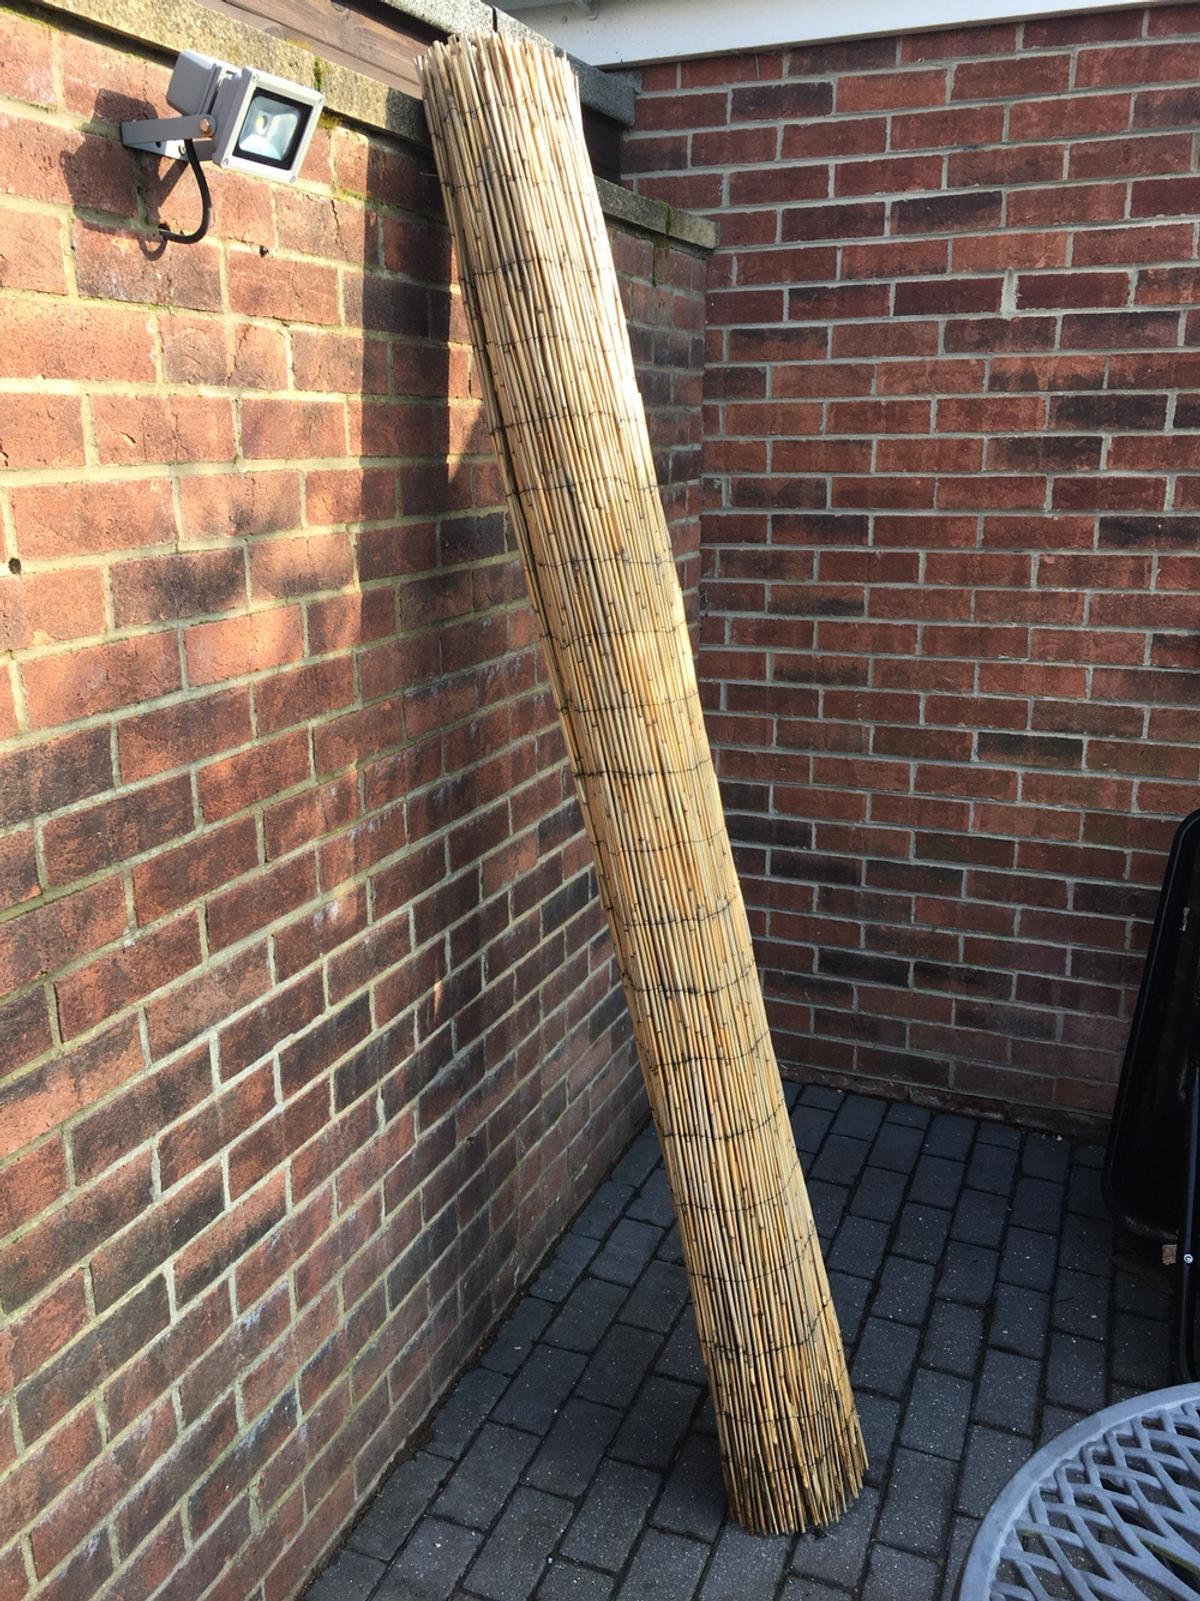 Bamboo Fence Screening In Dh7 Moor For 10 00 For Sale Shpock